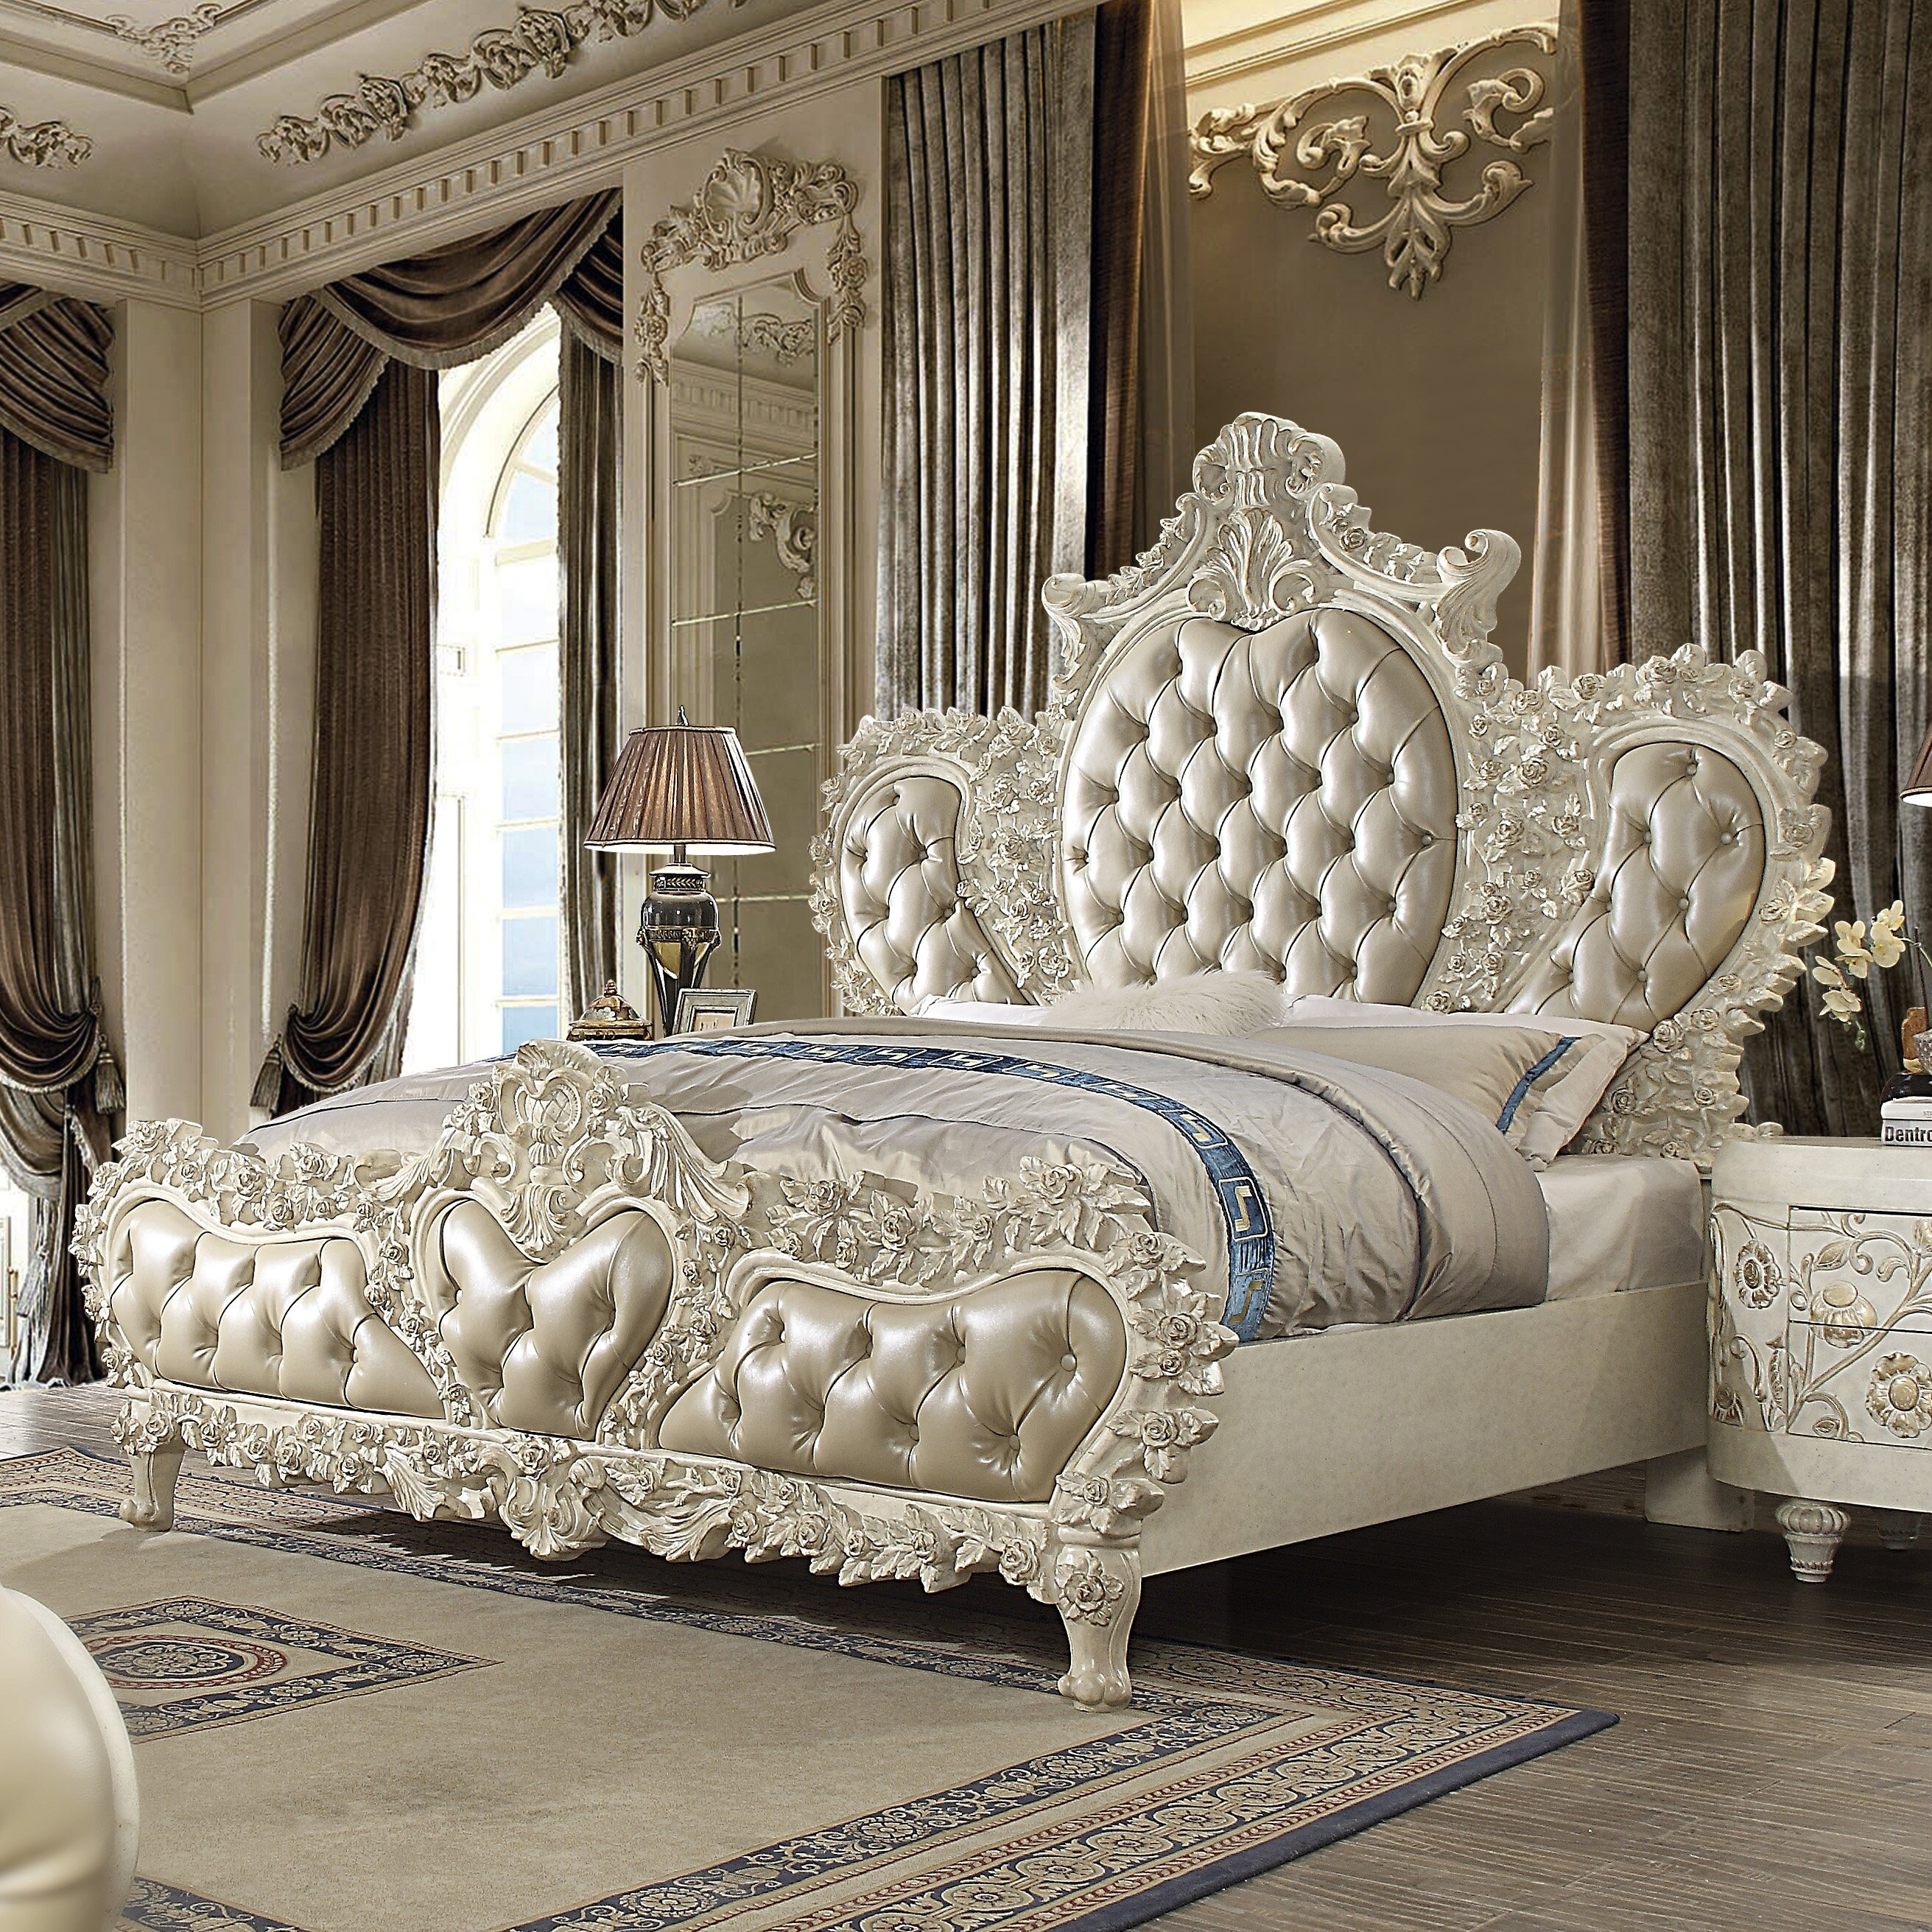 Major Q Luxurious Traditional Style Eastern King Size Bed In White Wayfair